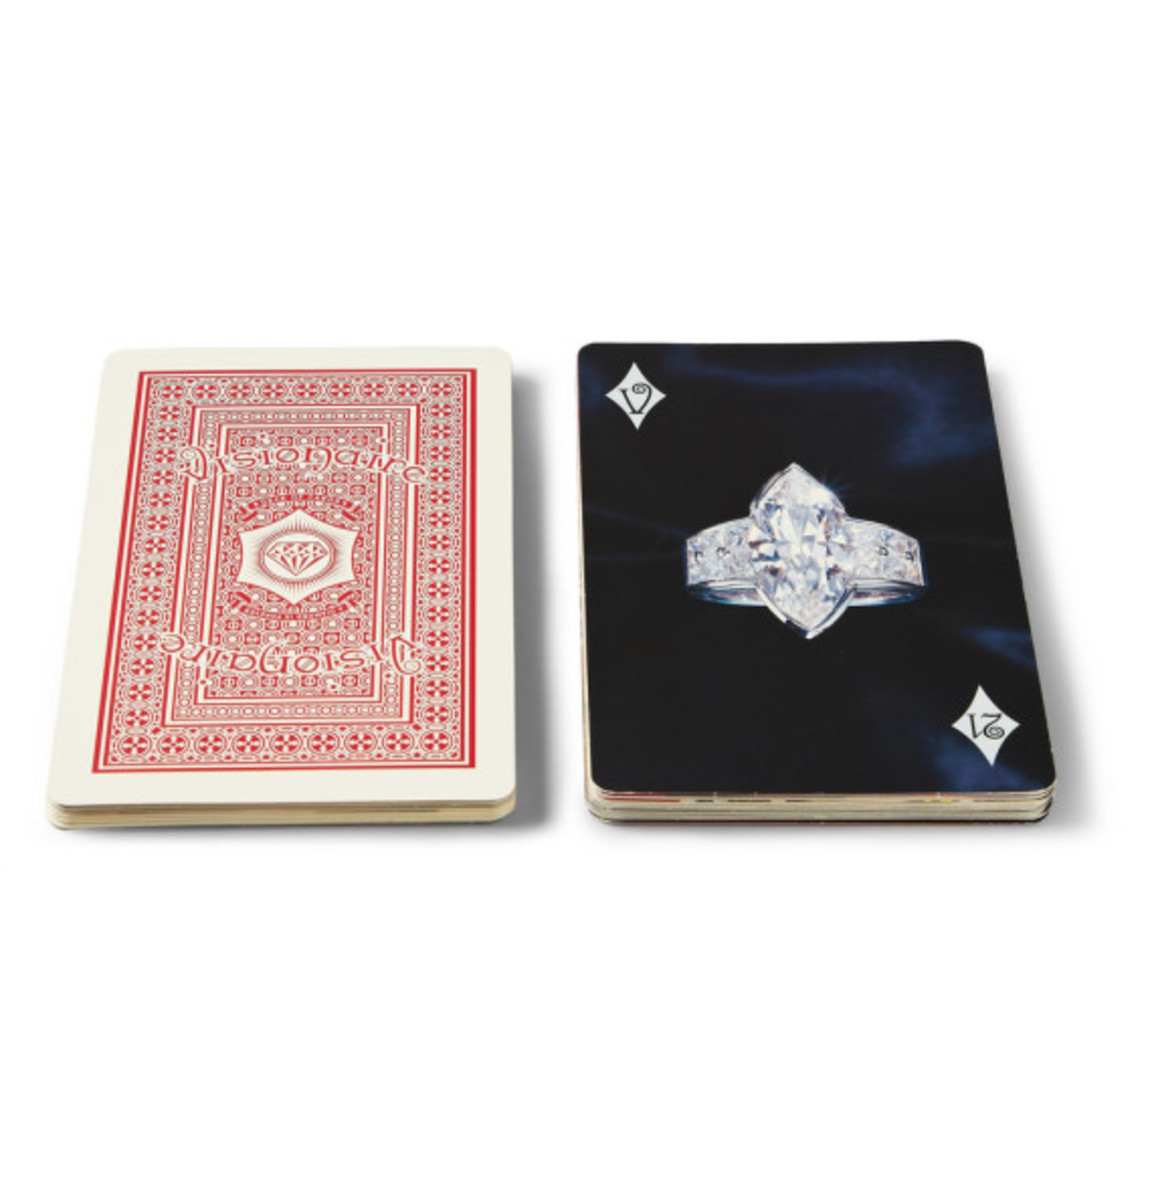 VISIONAIRE 21: Deck Of Cards/The Diamond Issue | Embedded With Real Diamonds - 5